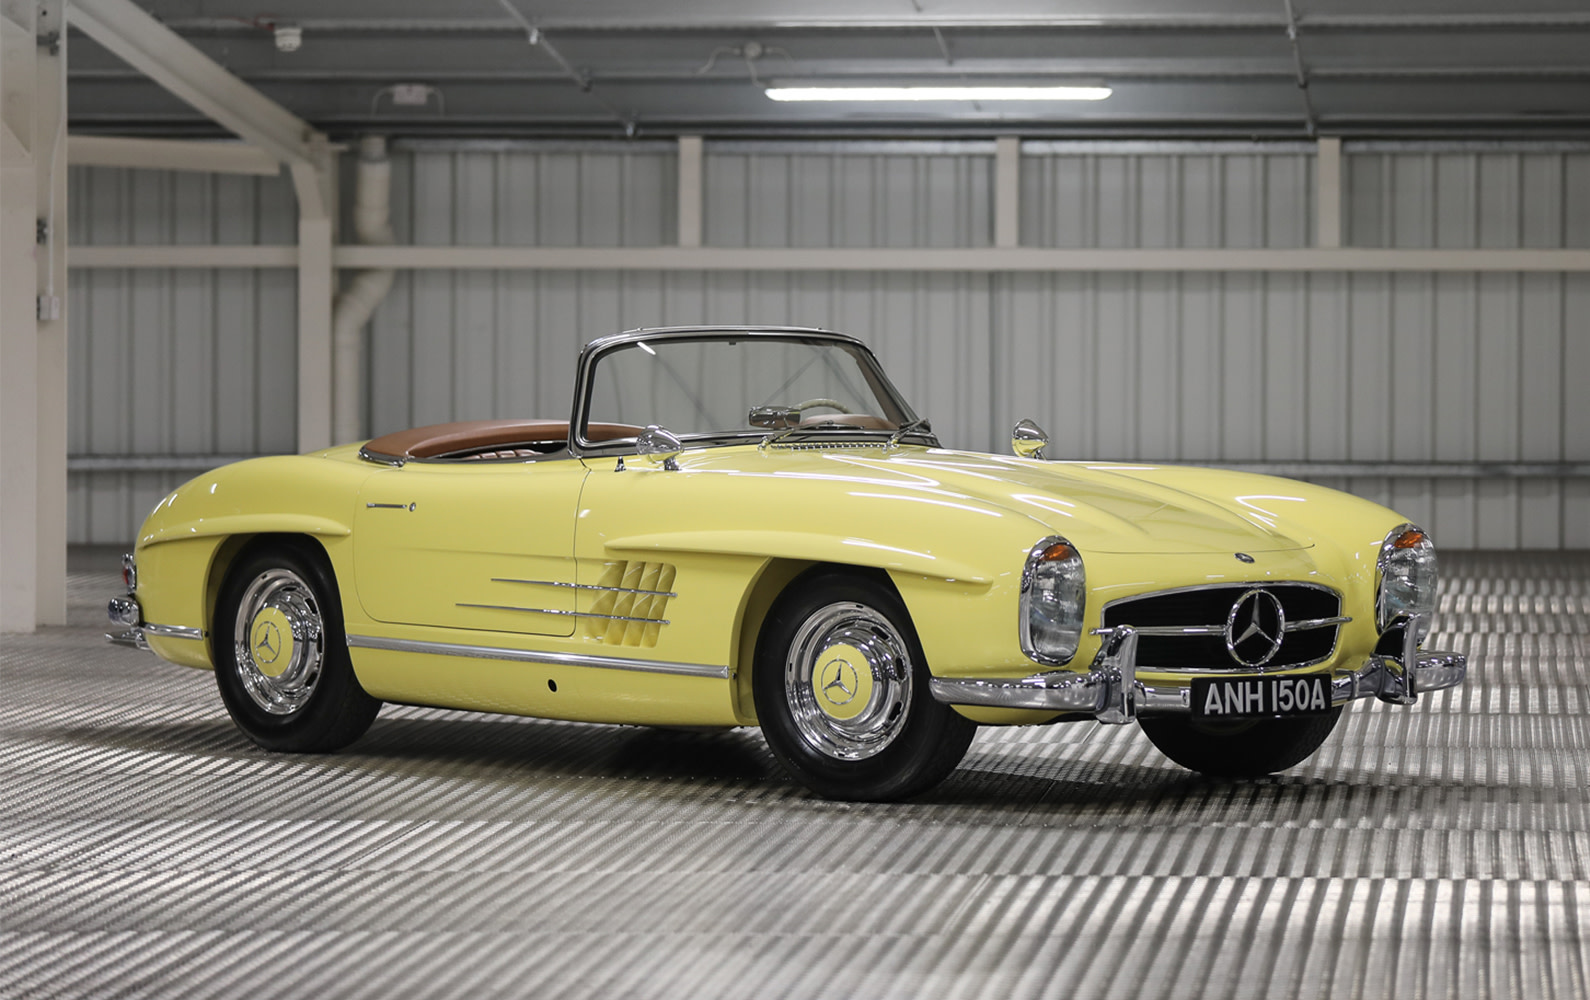 Prod/O21B - UK 2021/1963 Mercedes 300 SL Roadster/Hero/Mercedes_300_SL_Roadster-01_bt1xkb